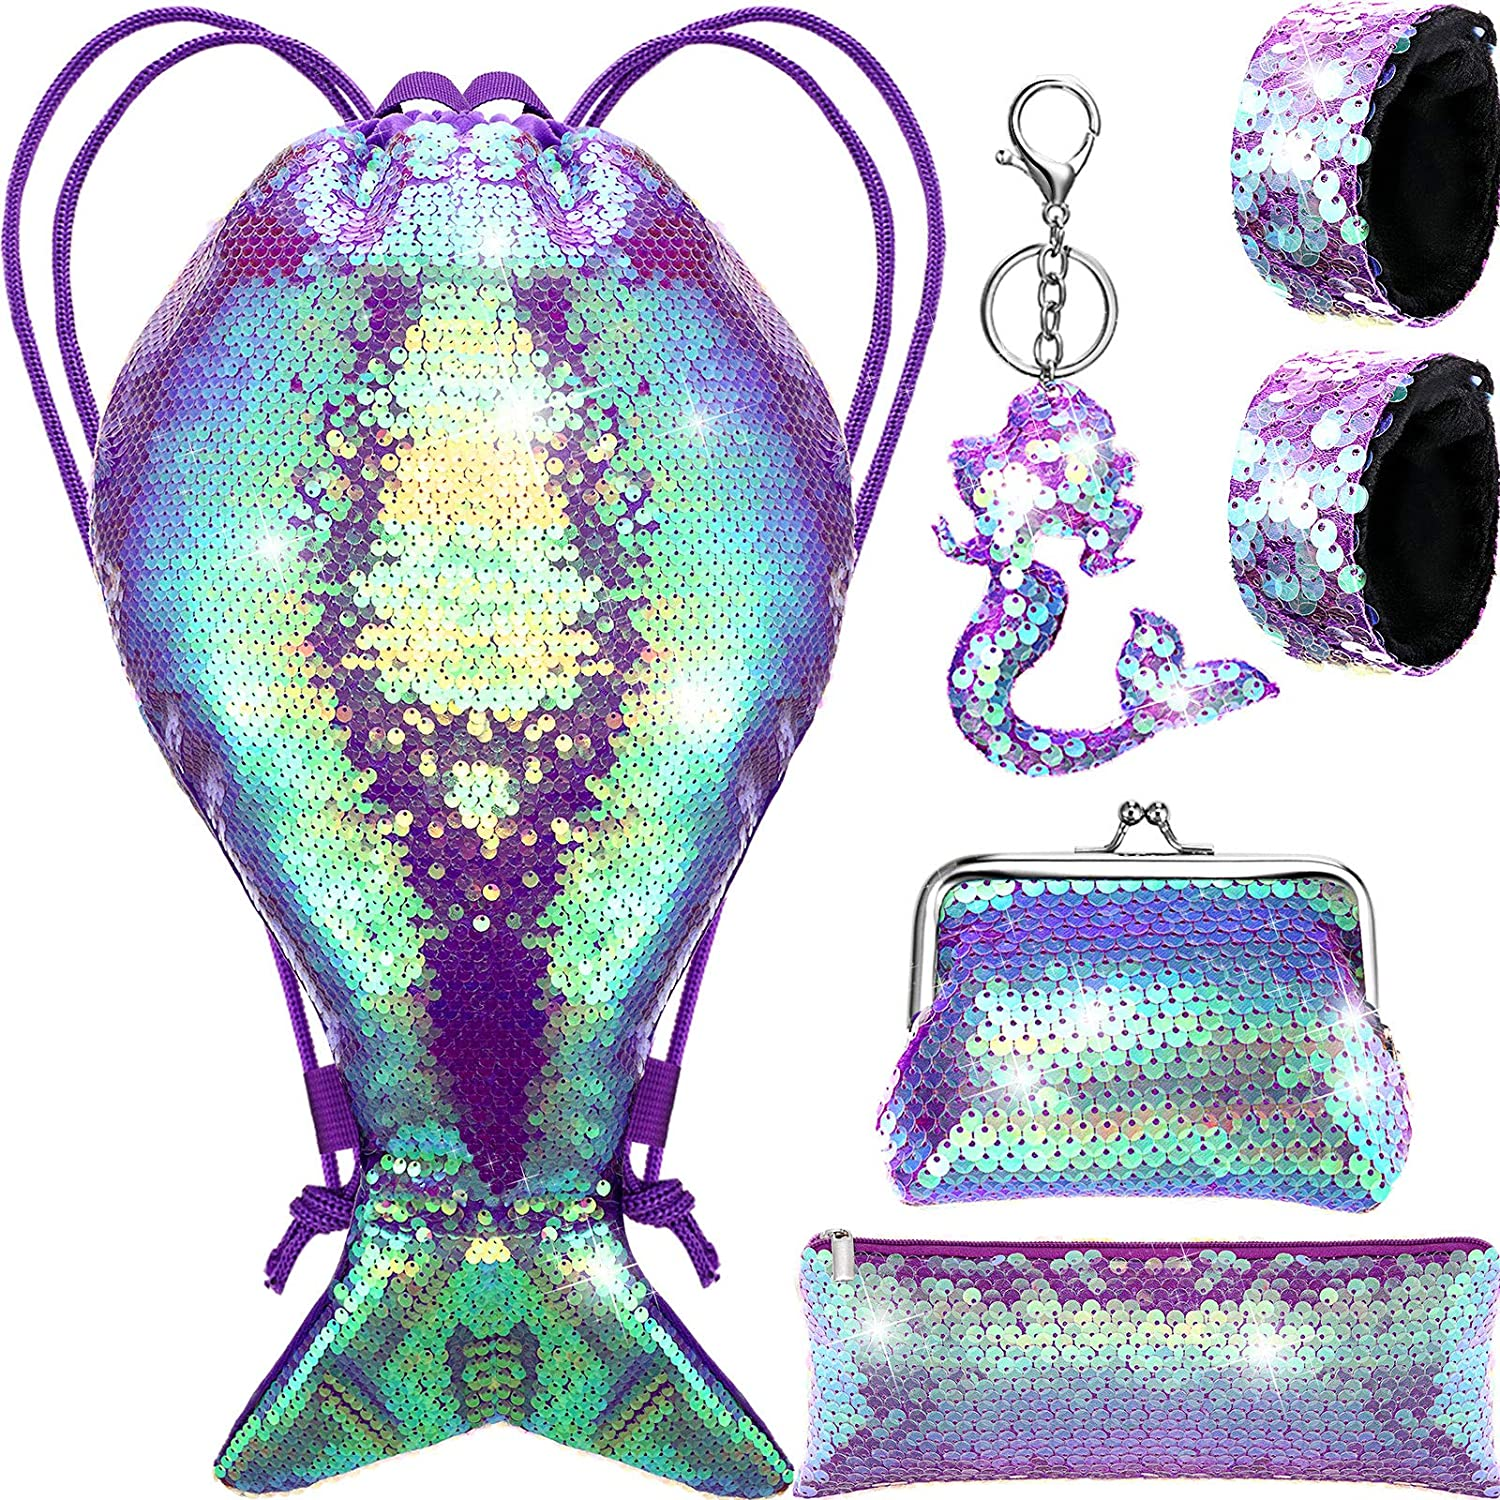 Mermaid Tail Reversible Albuquerque Mall Max 62% OFF Sequin Drawstring Tran Bag Backpack Kit